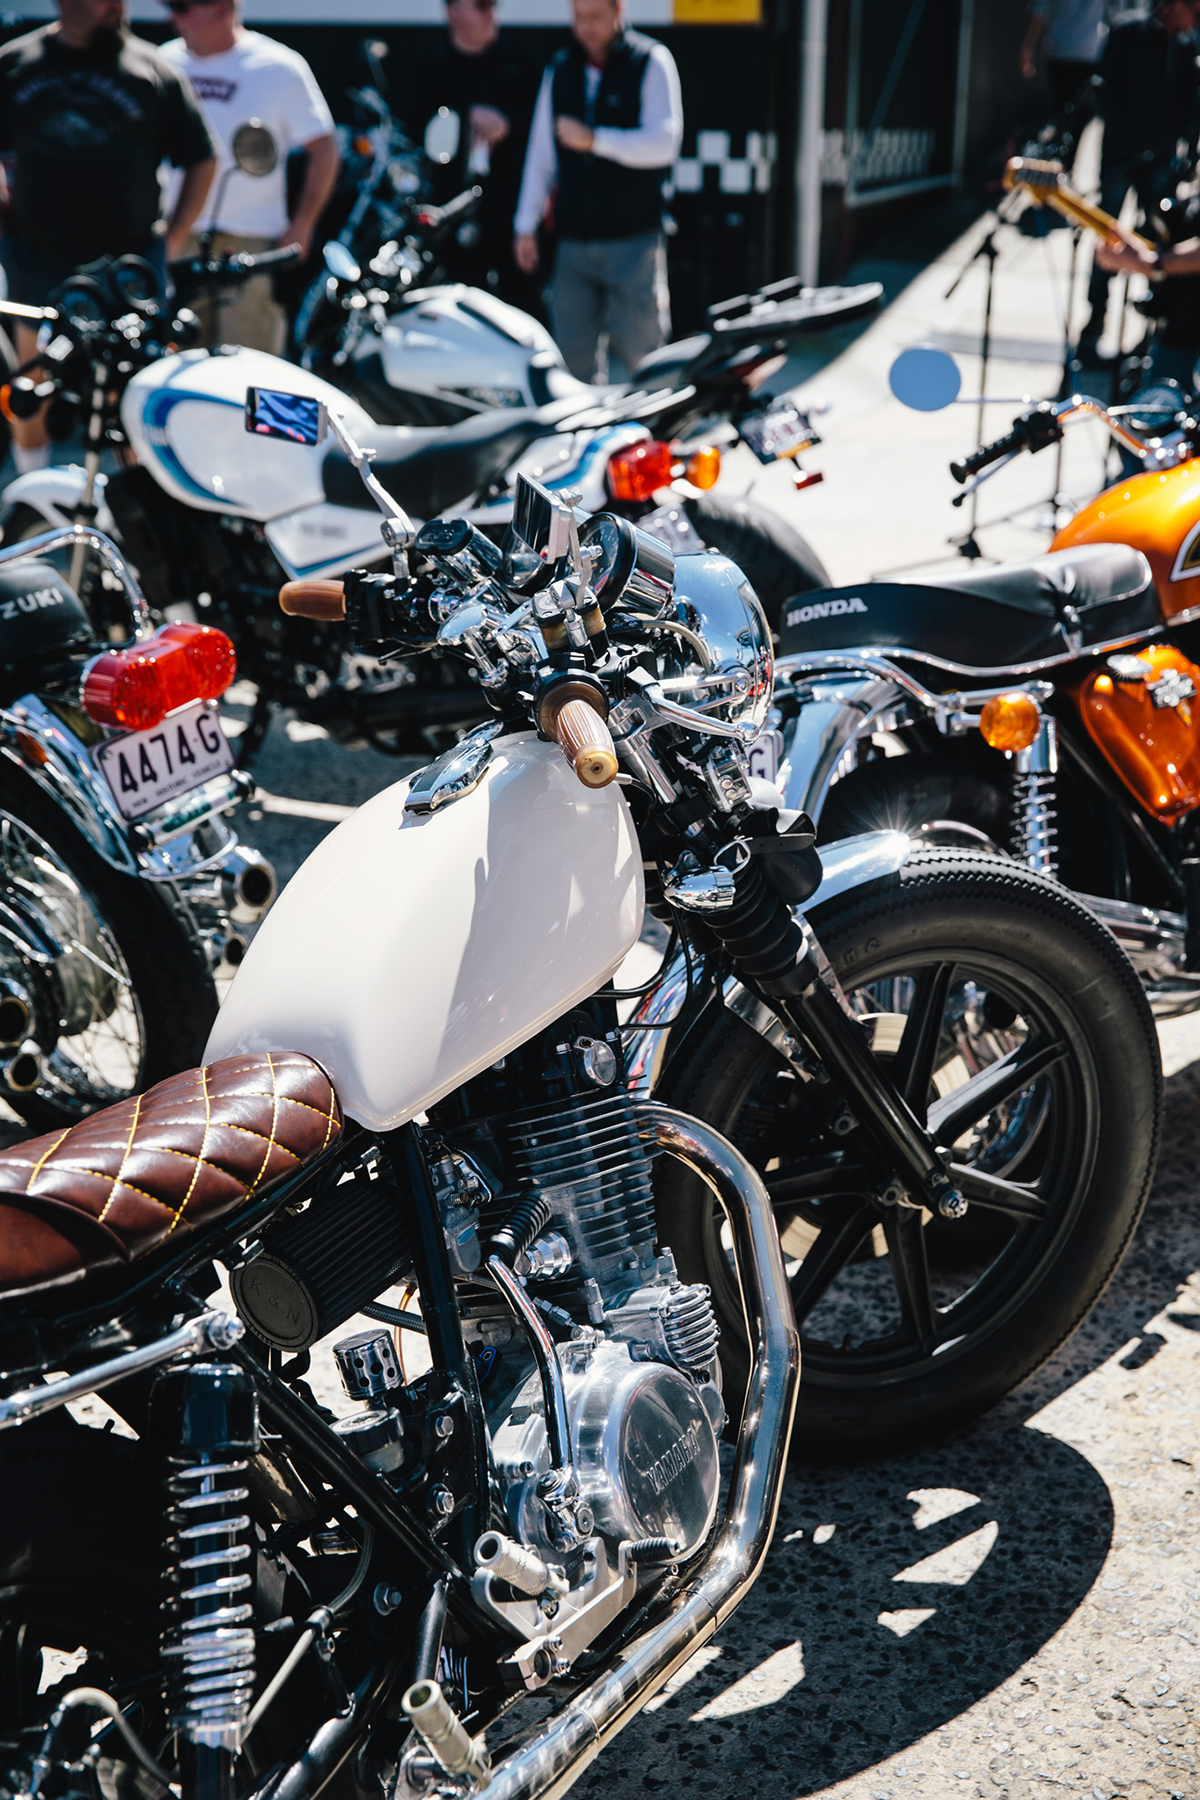 Surfside_Motorcycle_Japanese_8615